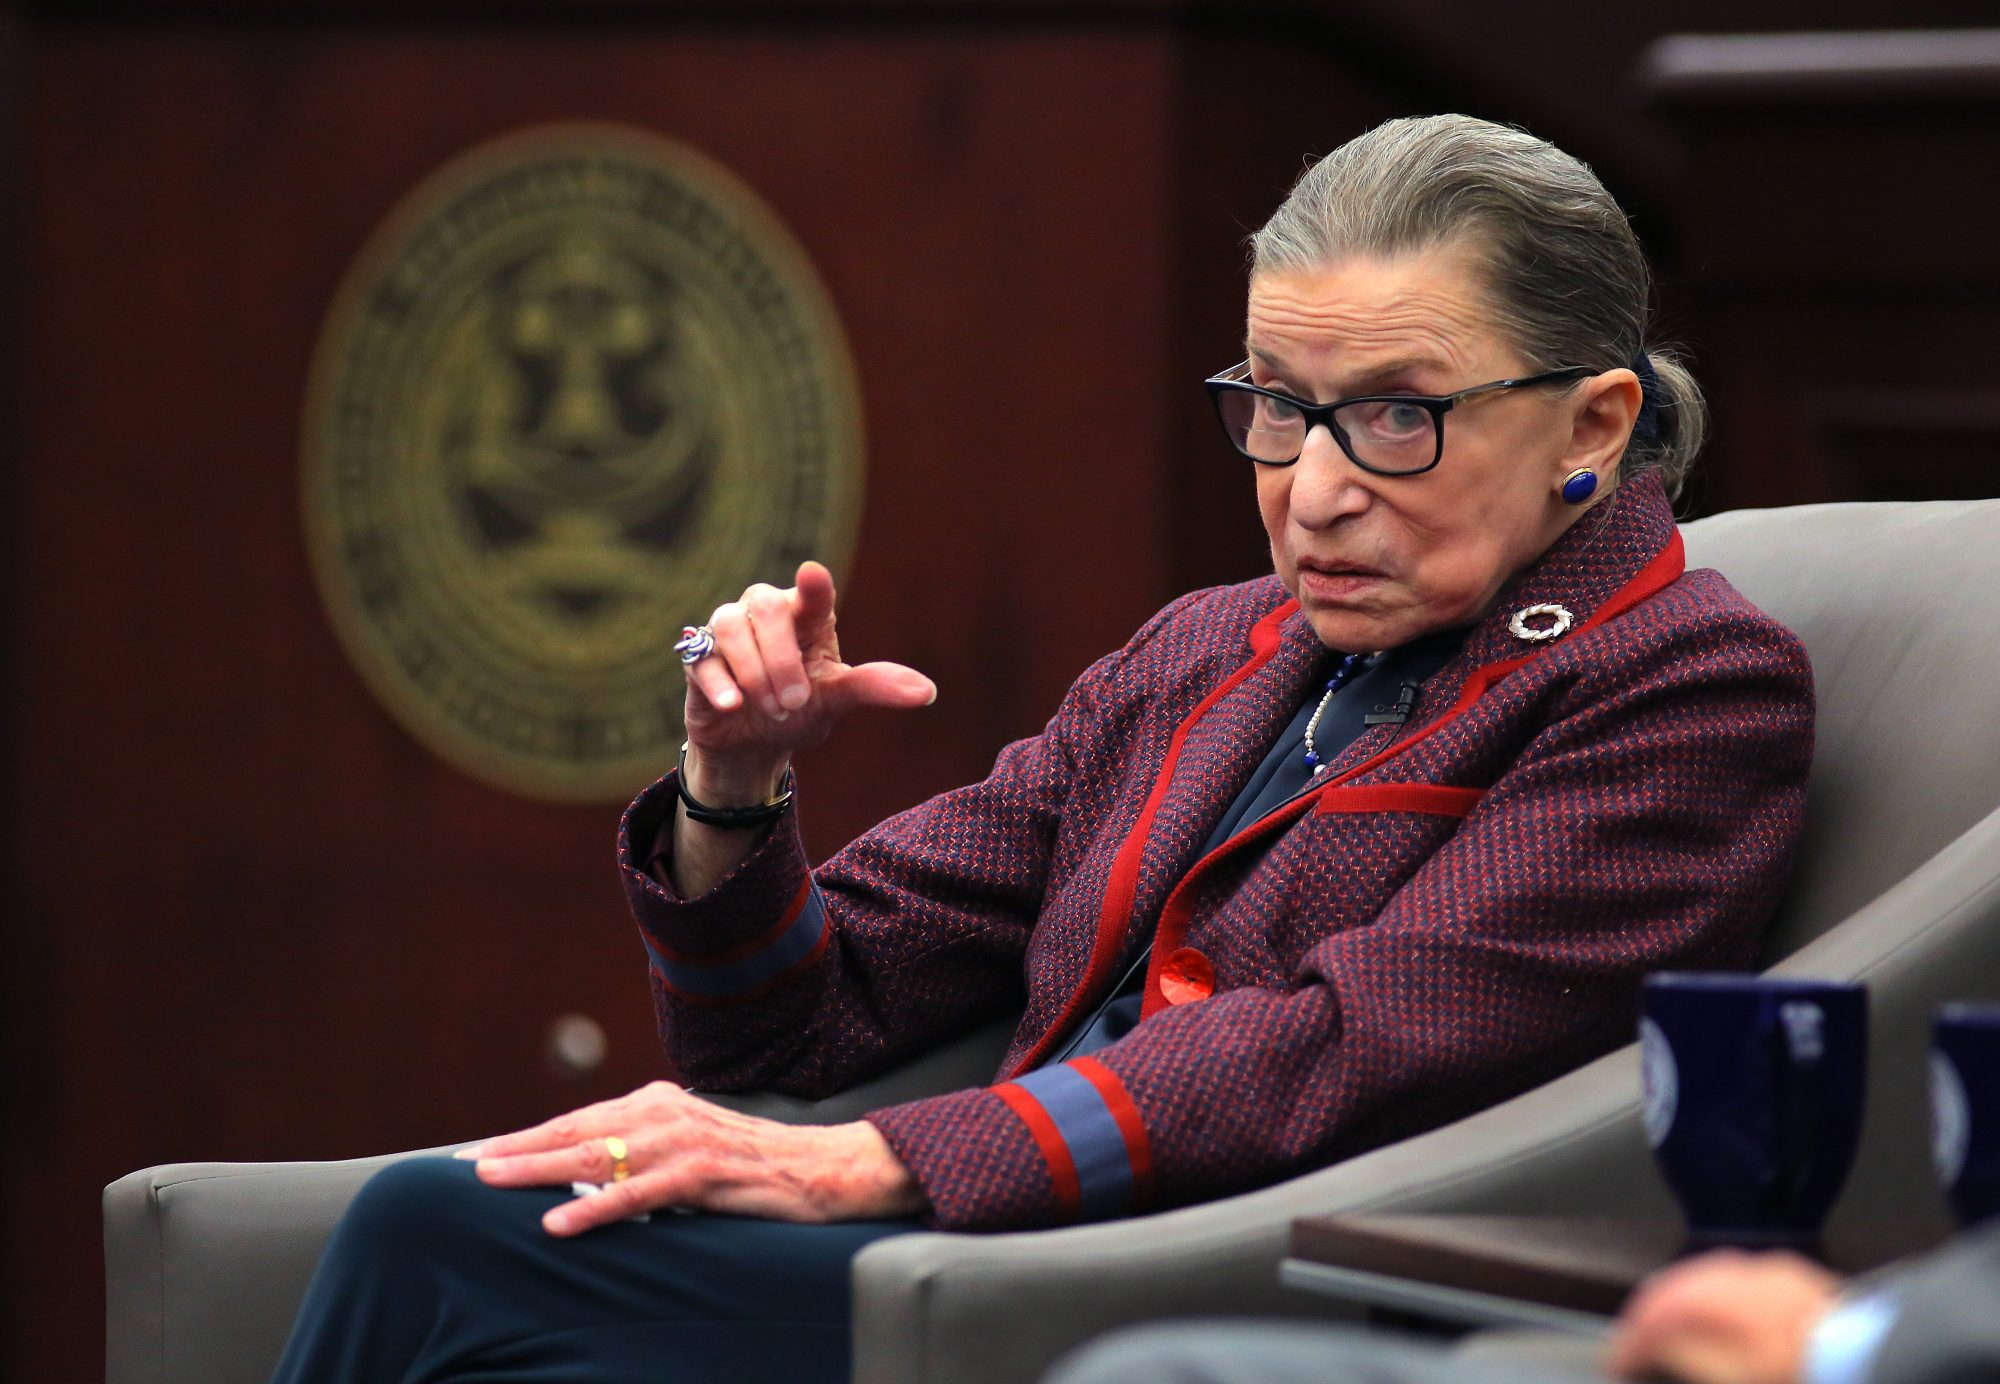 Ruth Bader Ginsburg Weighs in on Whether a Hot Dog Is a Sandwich